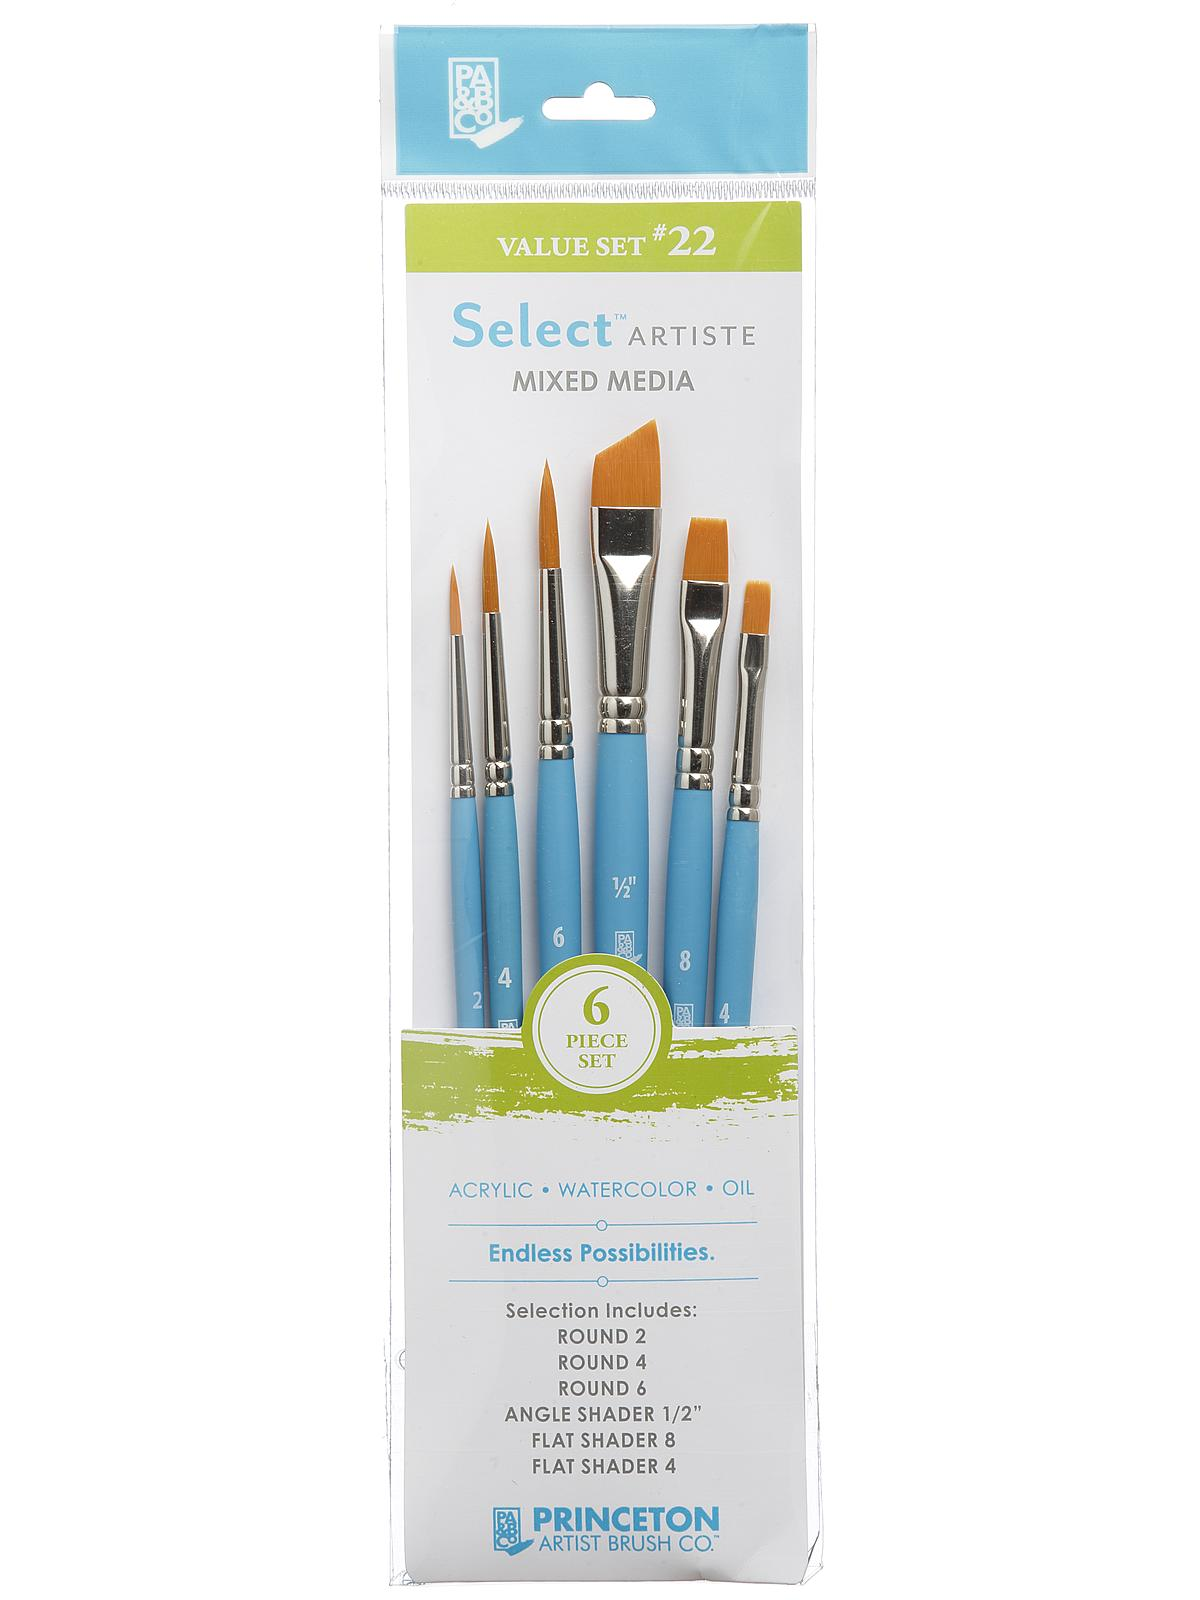 Select Artiste Brush Sets